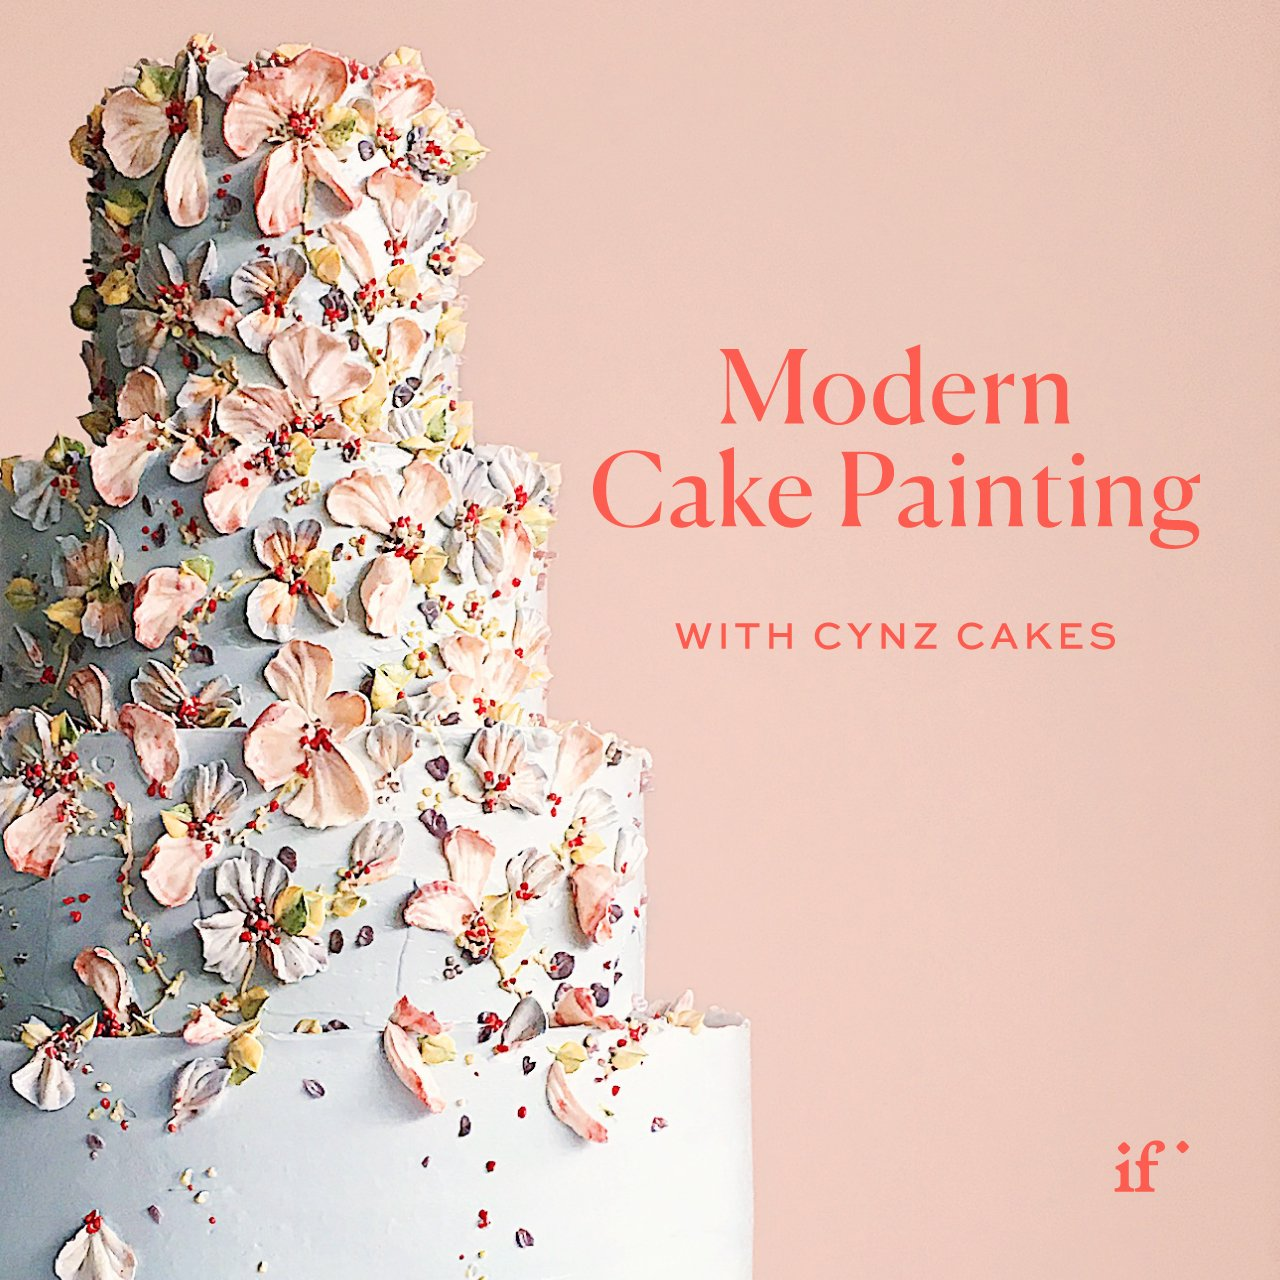 New Sale Payment Plan: Modern Cake Painting with Cynz Cakes- 7 Monthly Payments of $99